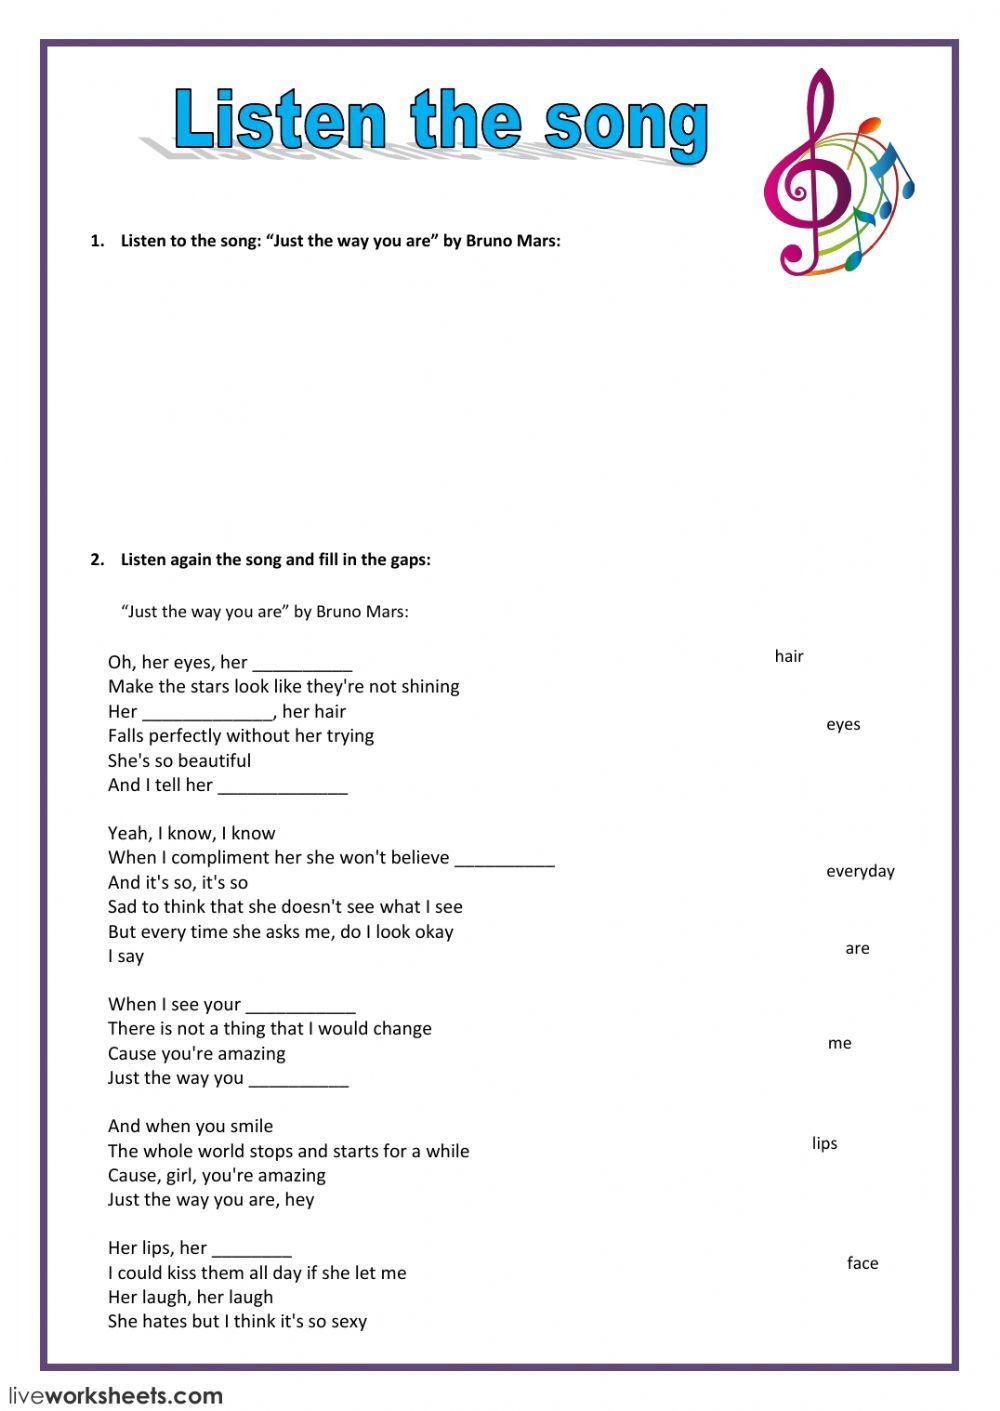 Homophone Worksheets 5th Grade Listening Prehension English as A Second Language Esl